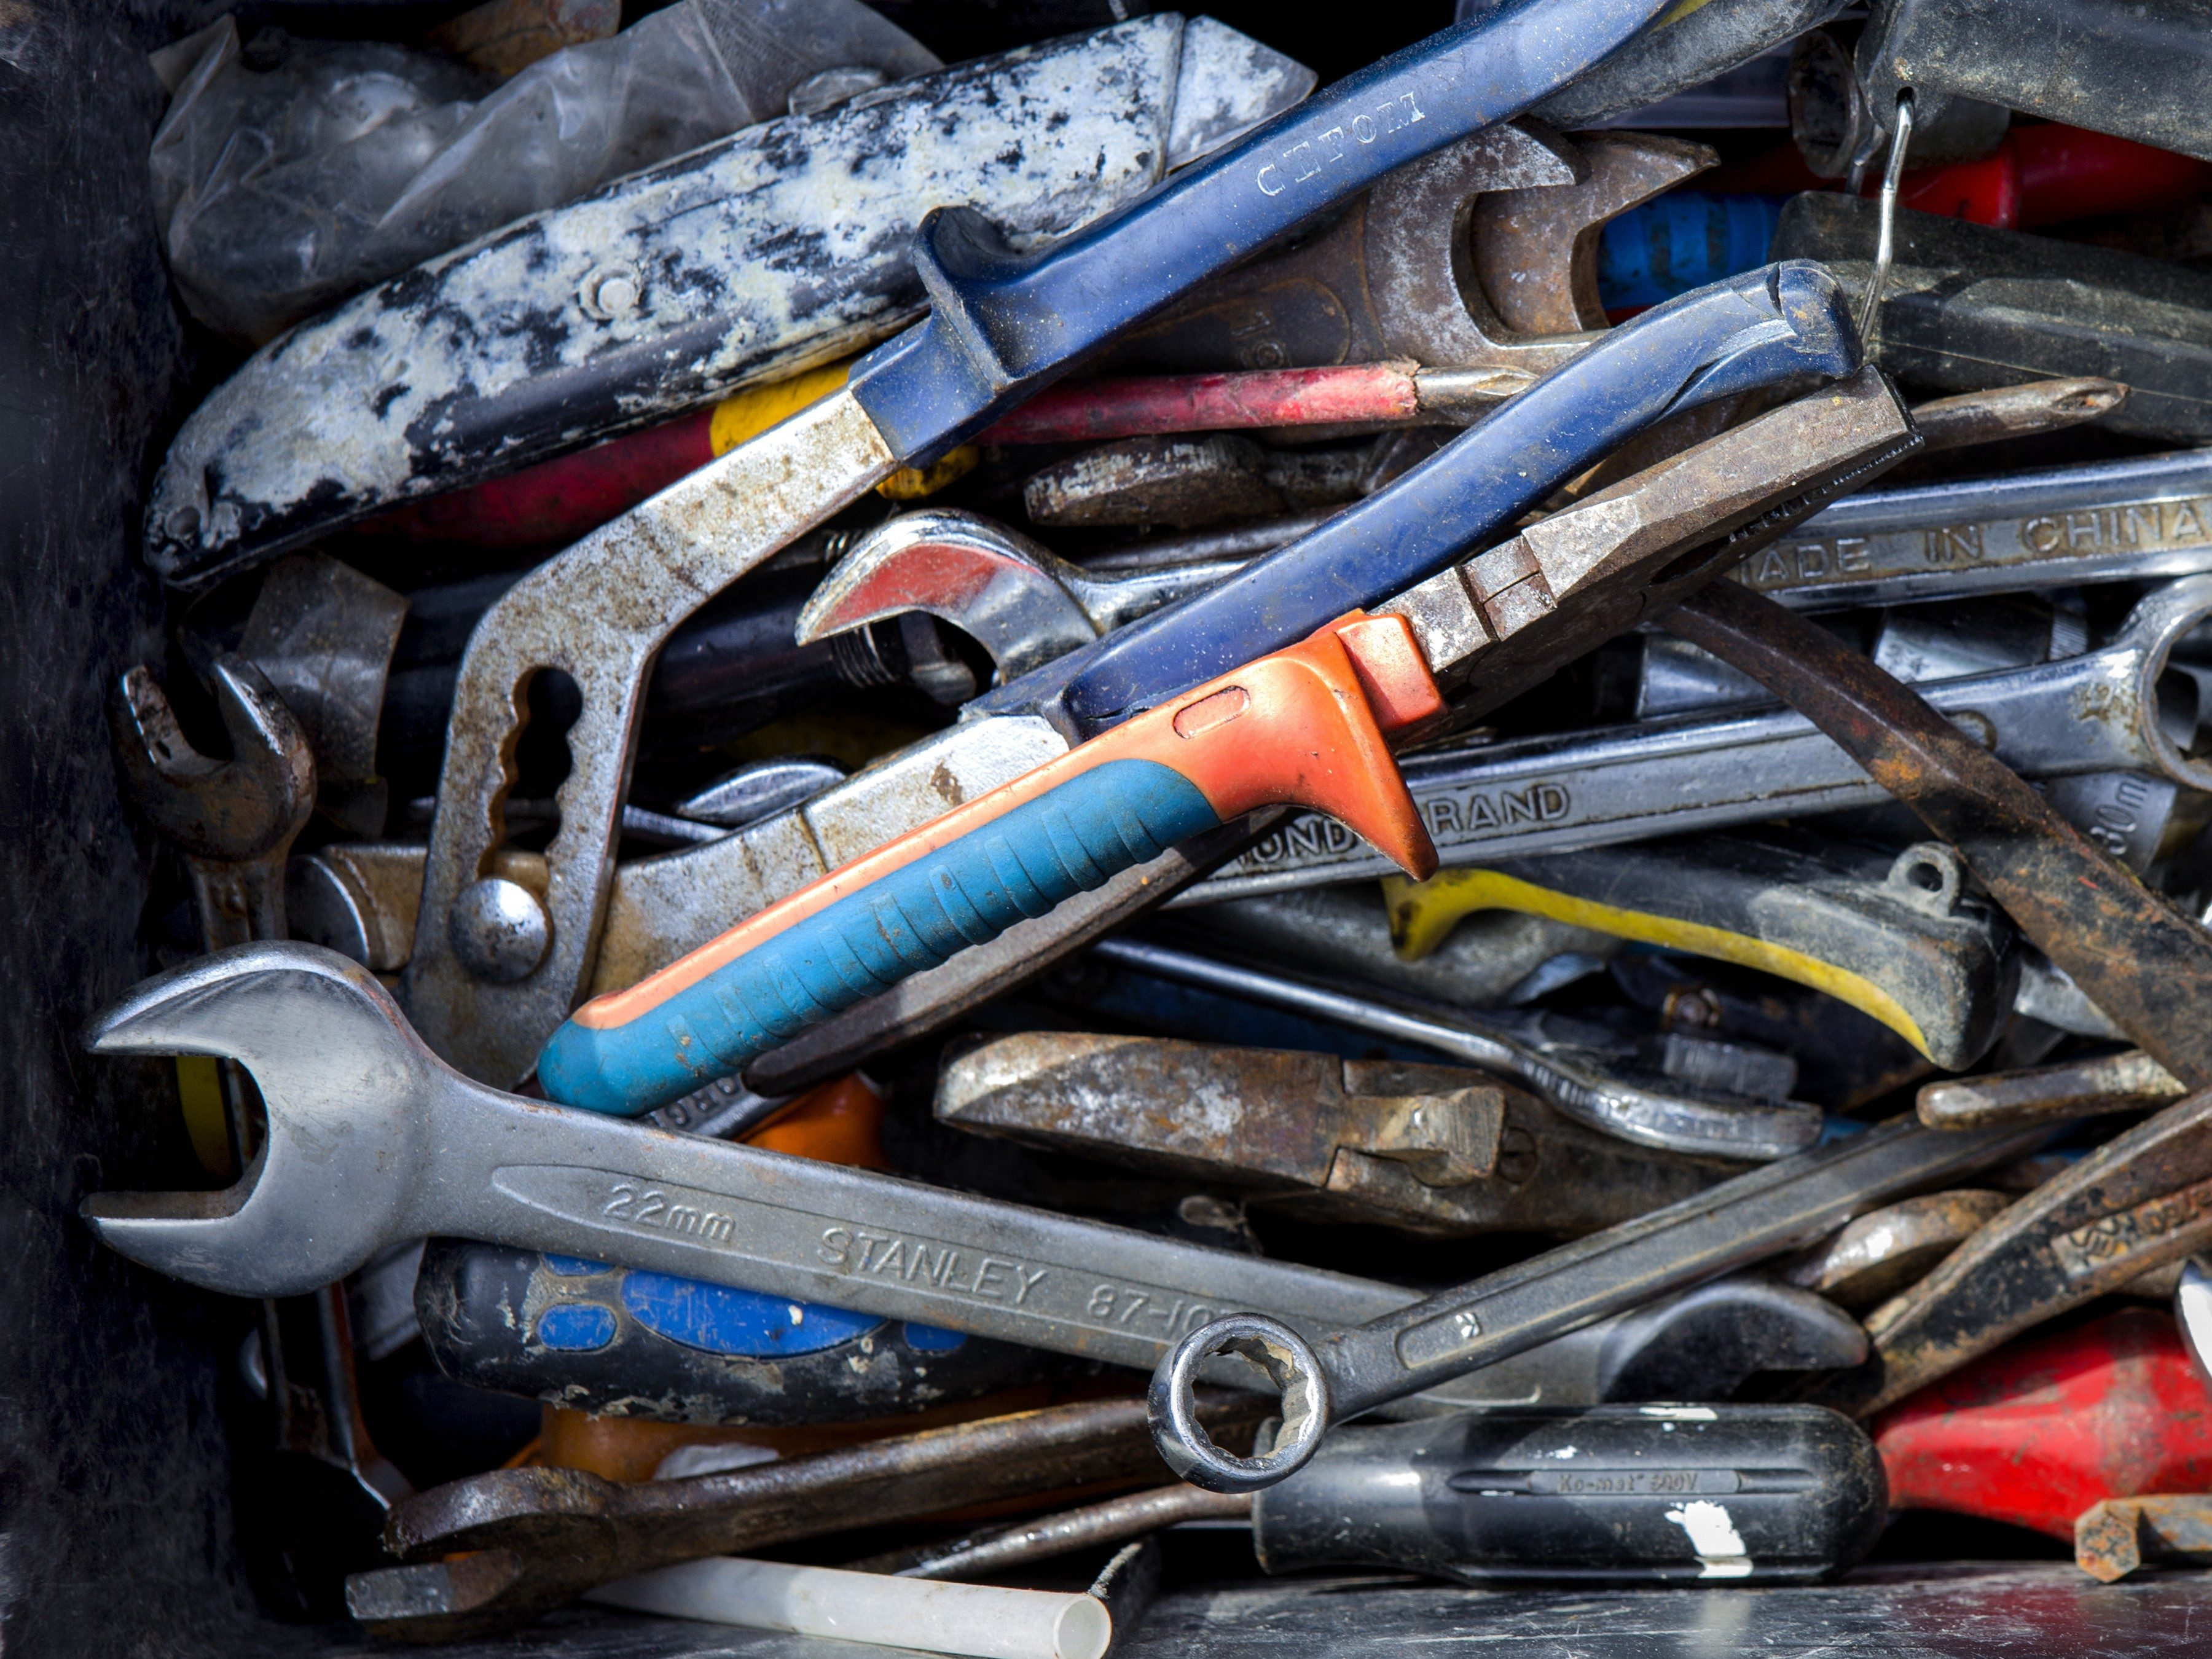 Use Chalk to Keep Tools Rust-Free